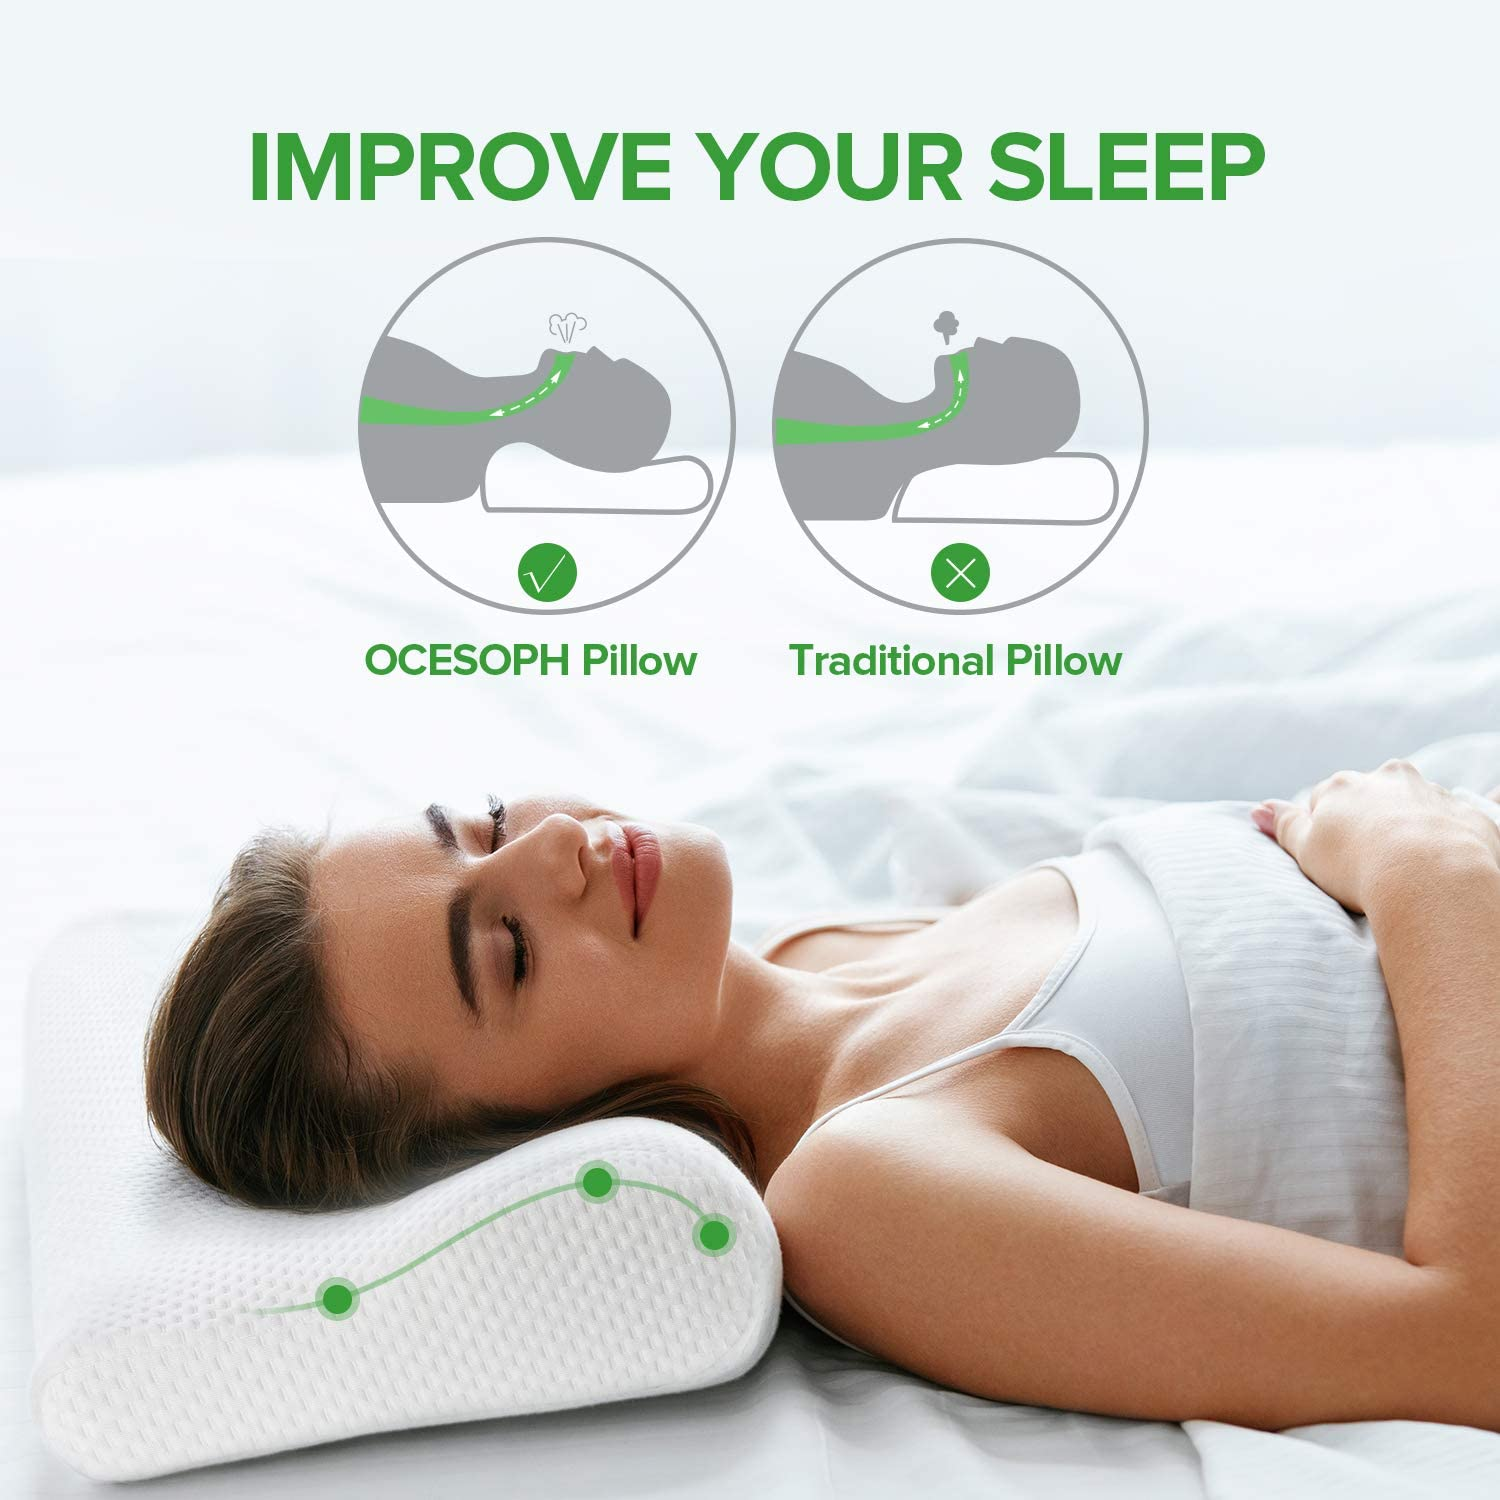 Review of Orthopedic Memory Foam Pillows for Neck Pain Relief, Bamboo Ergonomic Bed Pillow